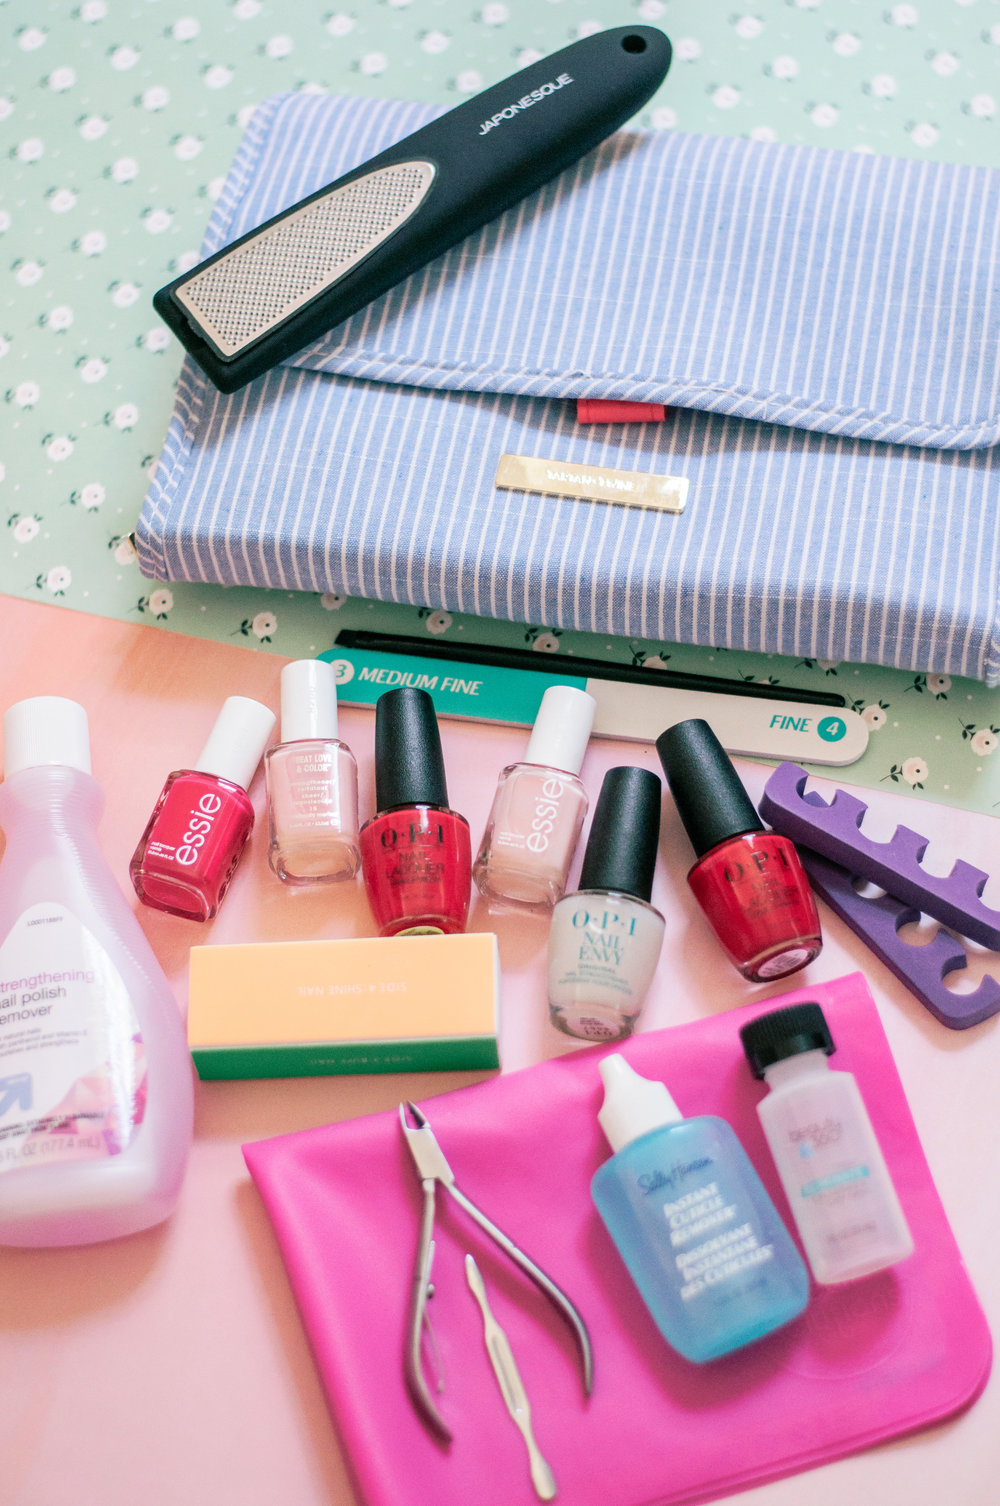 The Tools You Need for The Perfect DIY At Home Manicure and Pedicure